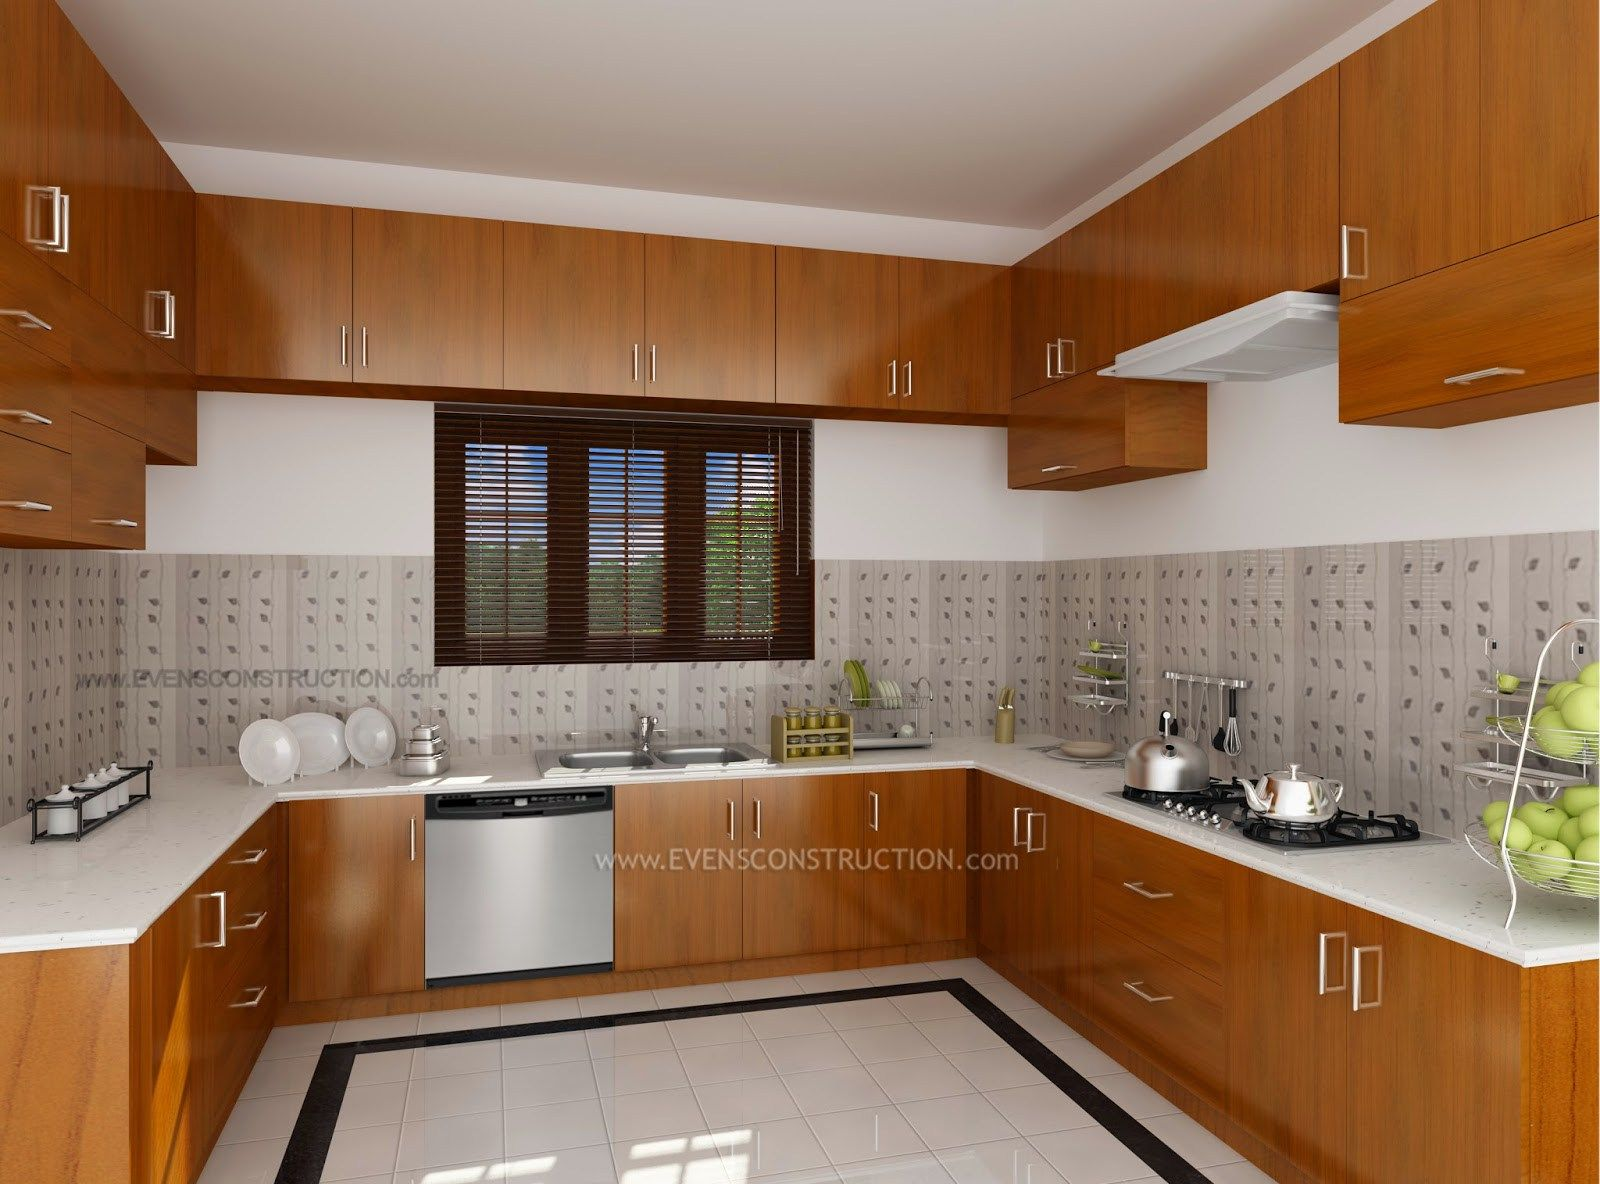 Design interior kitchen home kerala modern house kitchen for Kitchen interior design images